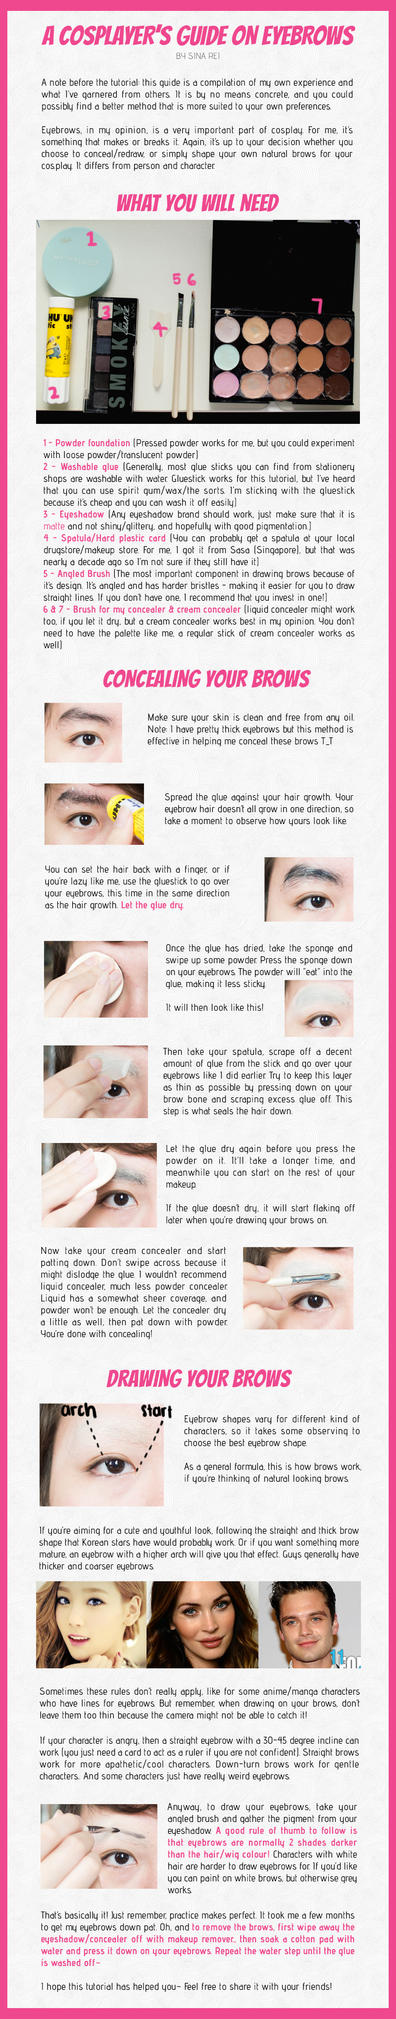 A Cosplayer's Guide to Eyebrows by sinarei